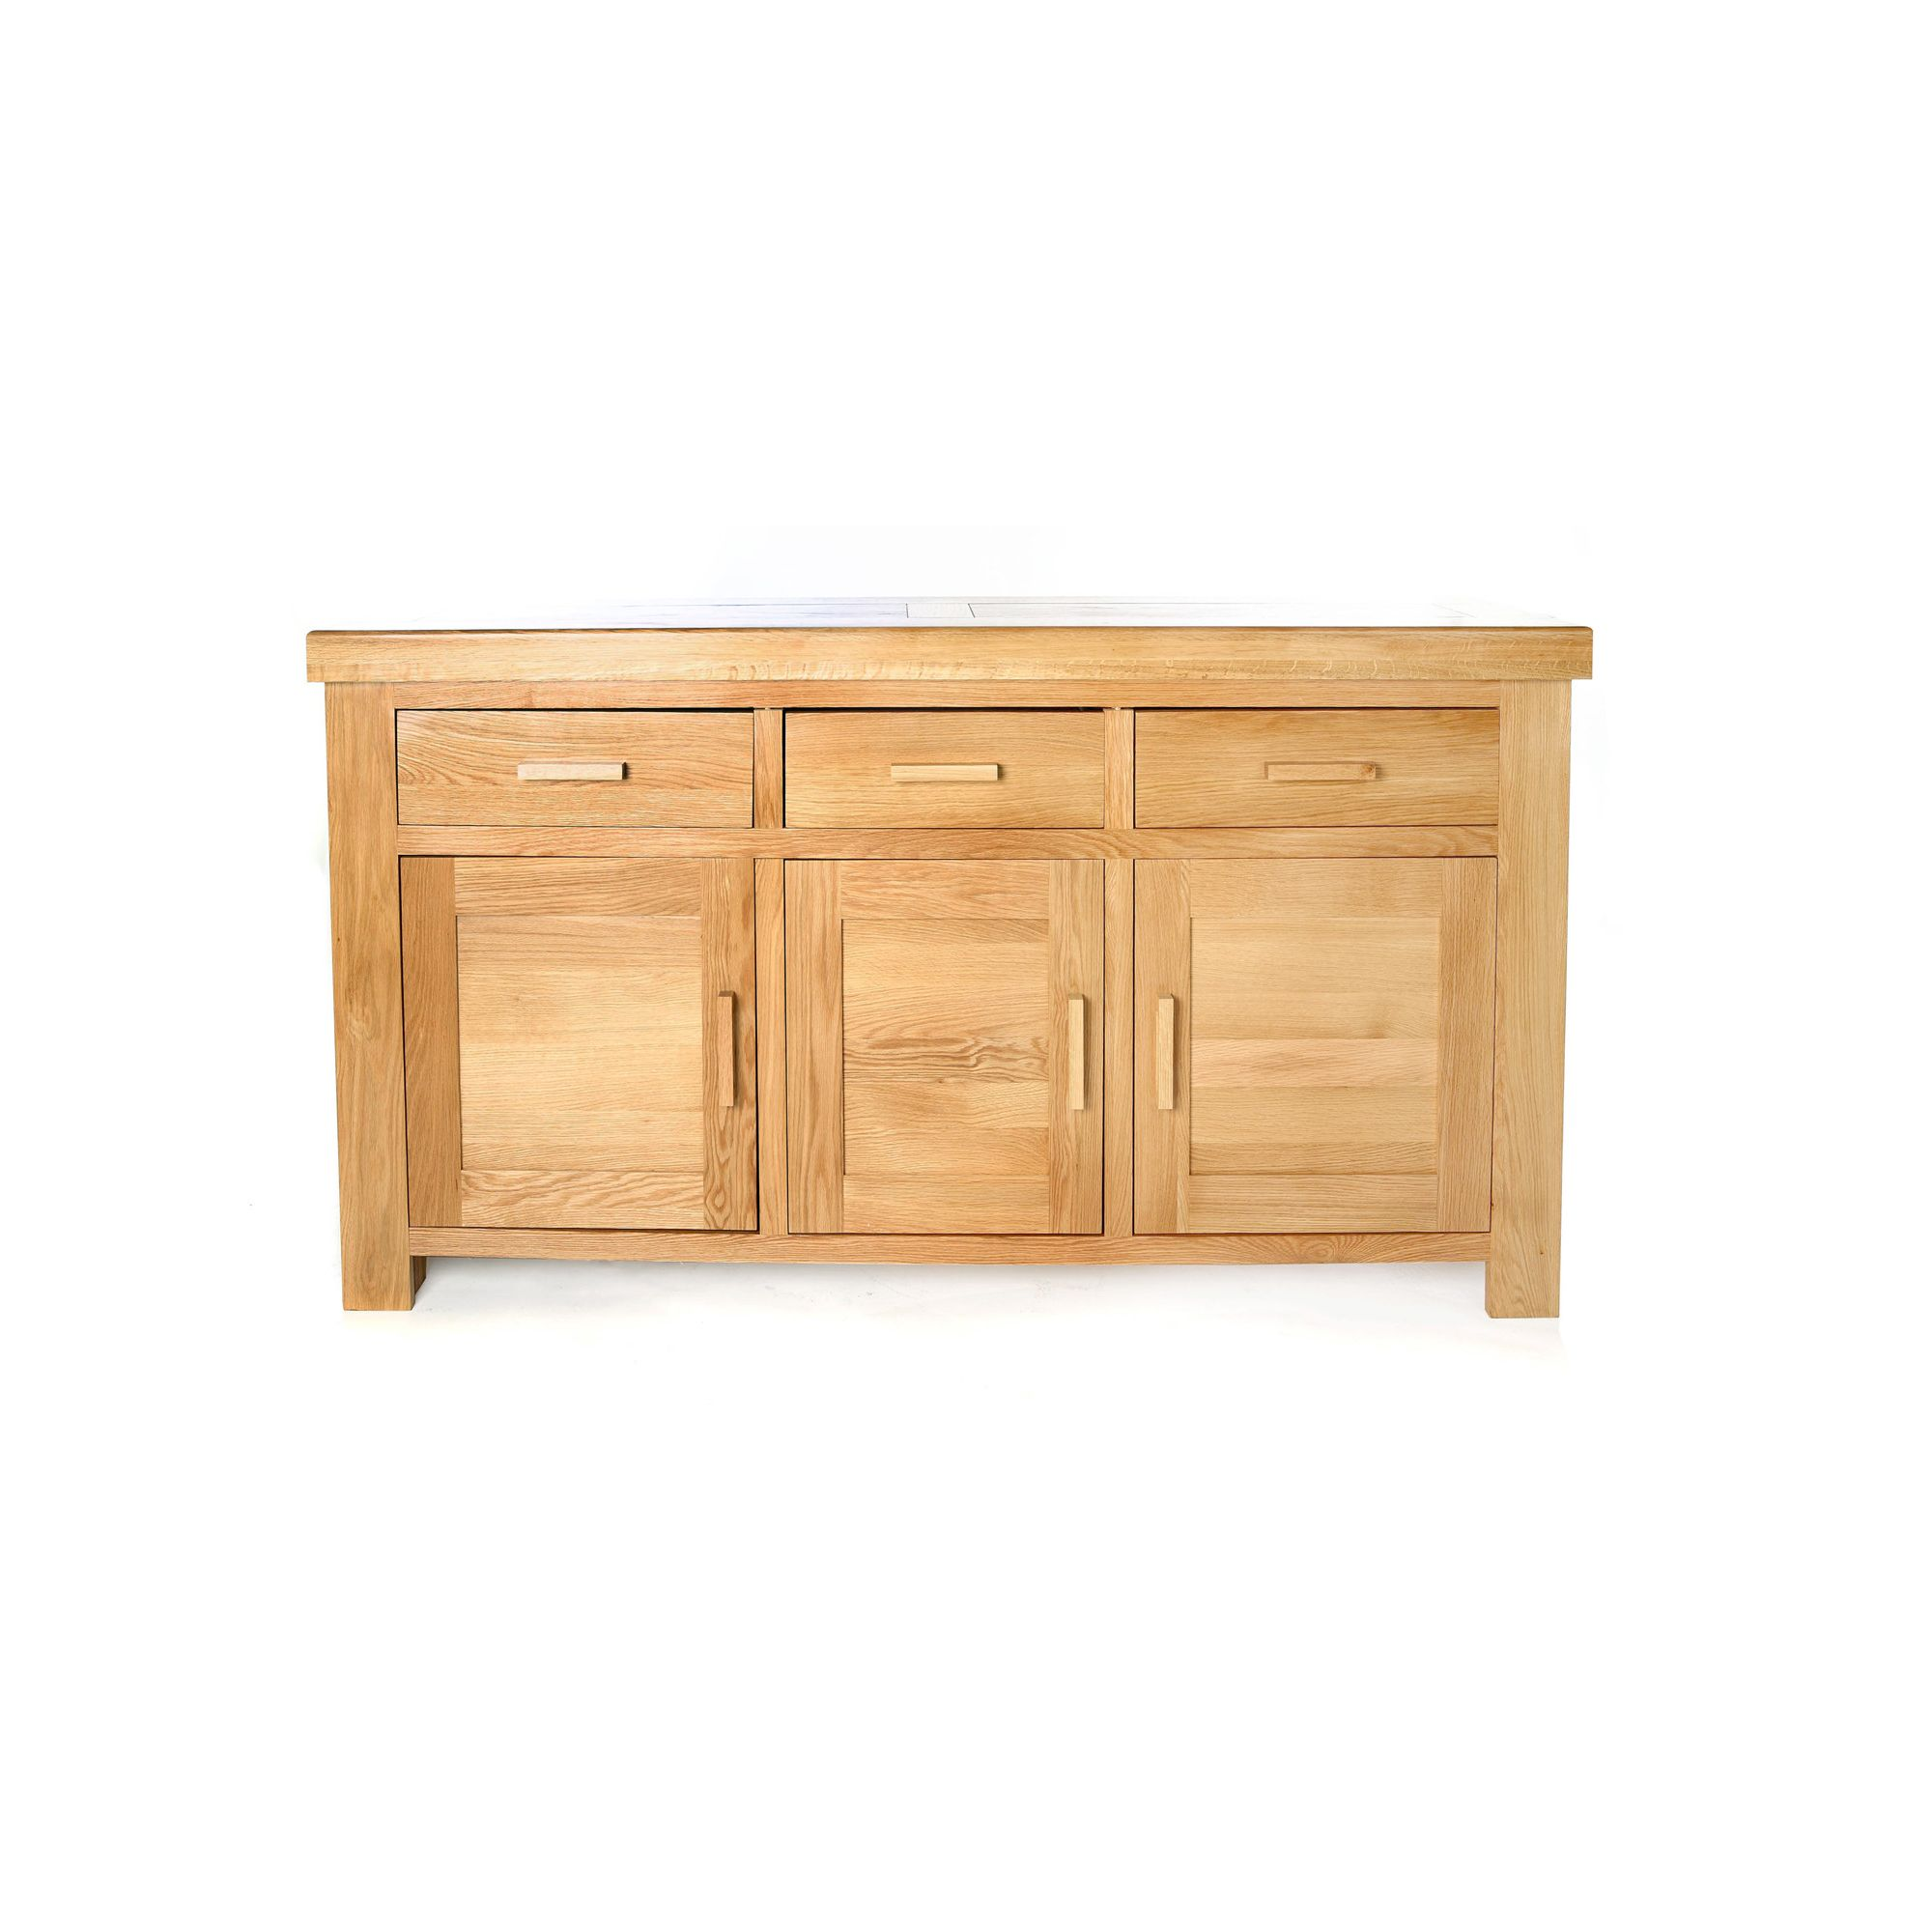 Shankar Enterprises Grand Marseille Large Sideboard - Natural Oak at Tesco Direct